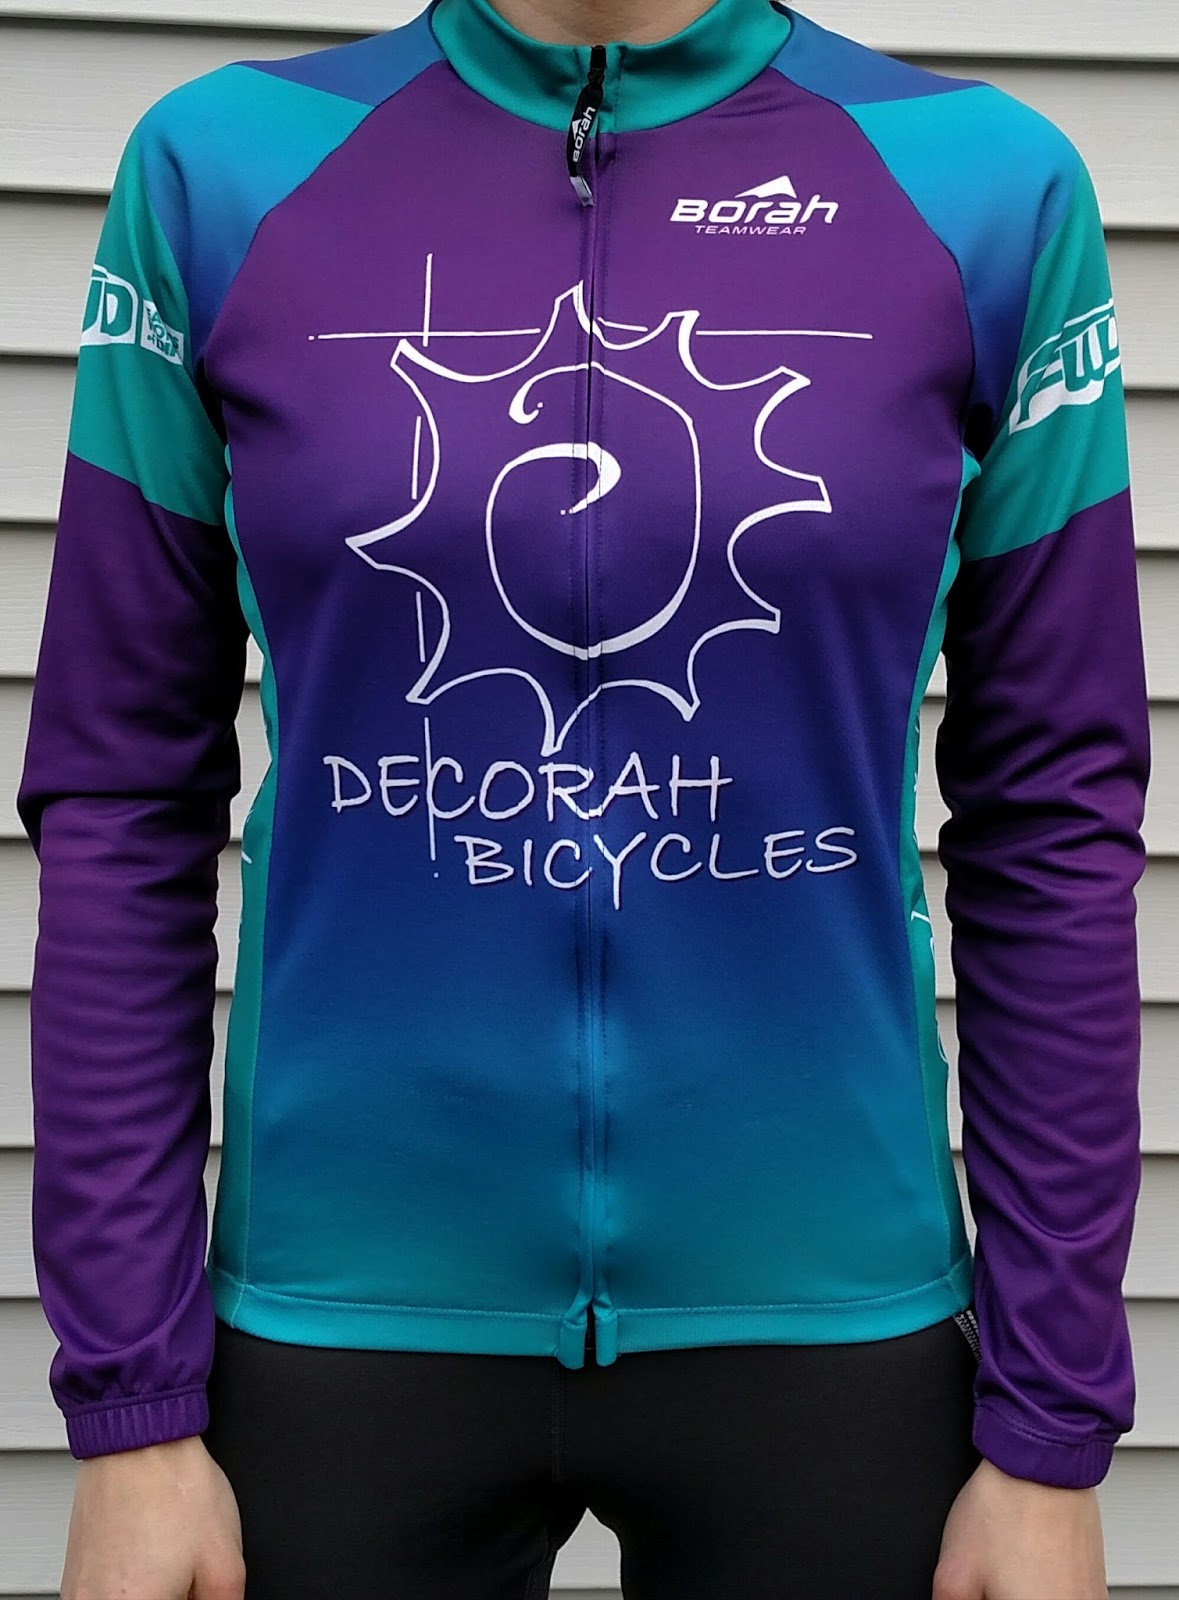 Decorah Bicycles is also considering getting the unisex Team Long Sleeved  jersey in as well 92377c505